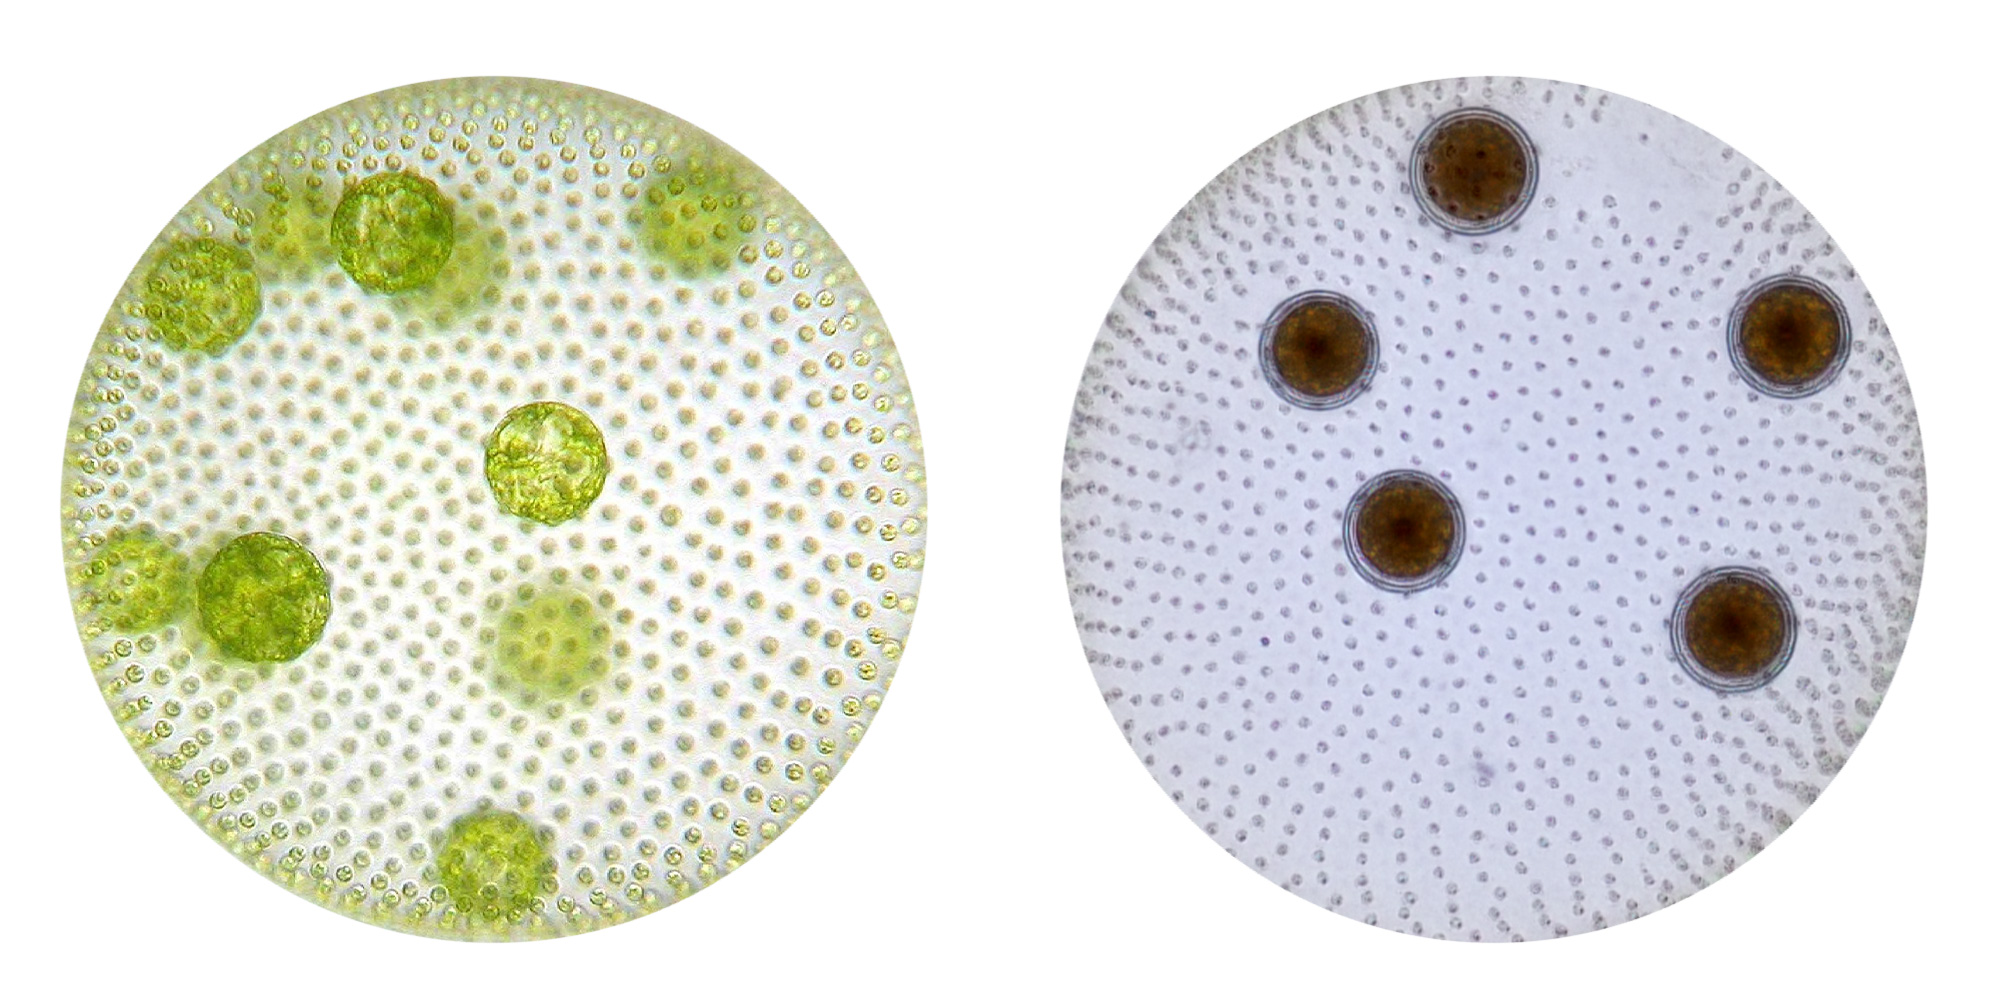 Side-by-side photographs of Volvox colonies in two different life stages. Both are green spherical balls of cells, but with differences in the appearance of their germ cells.